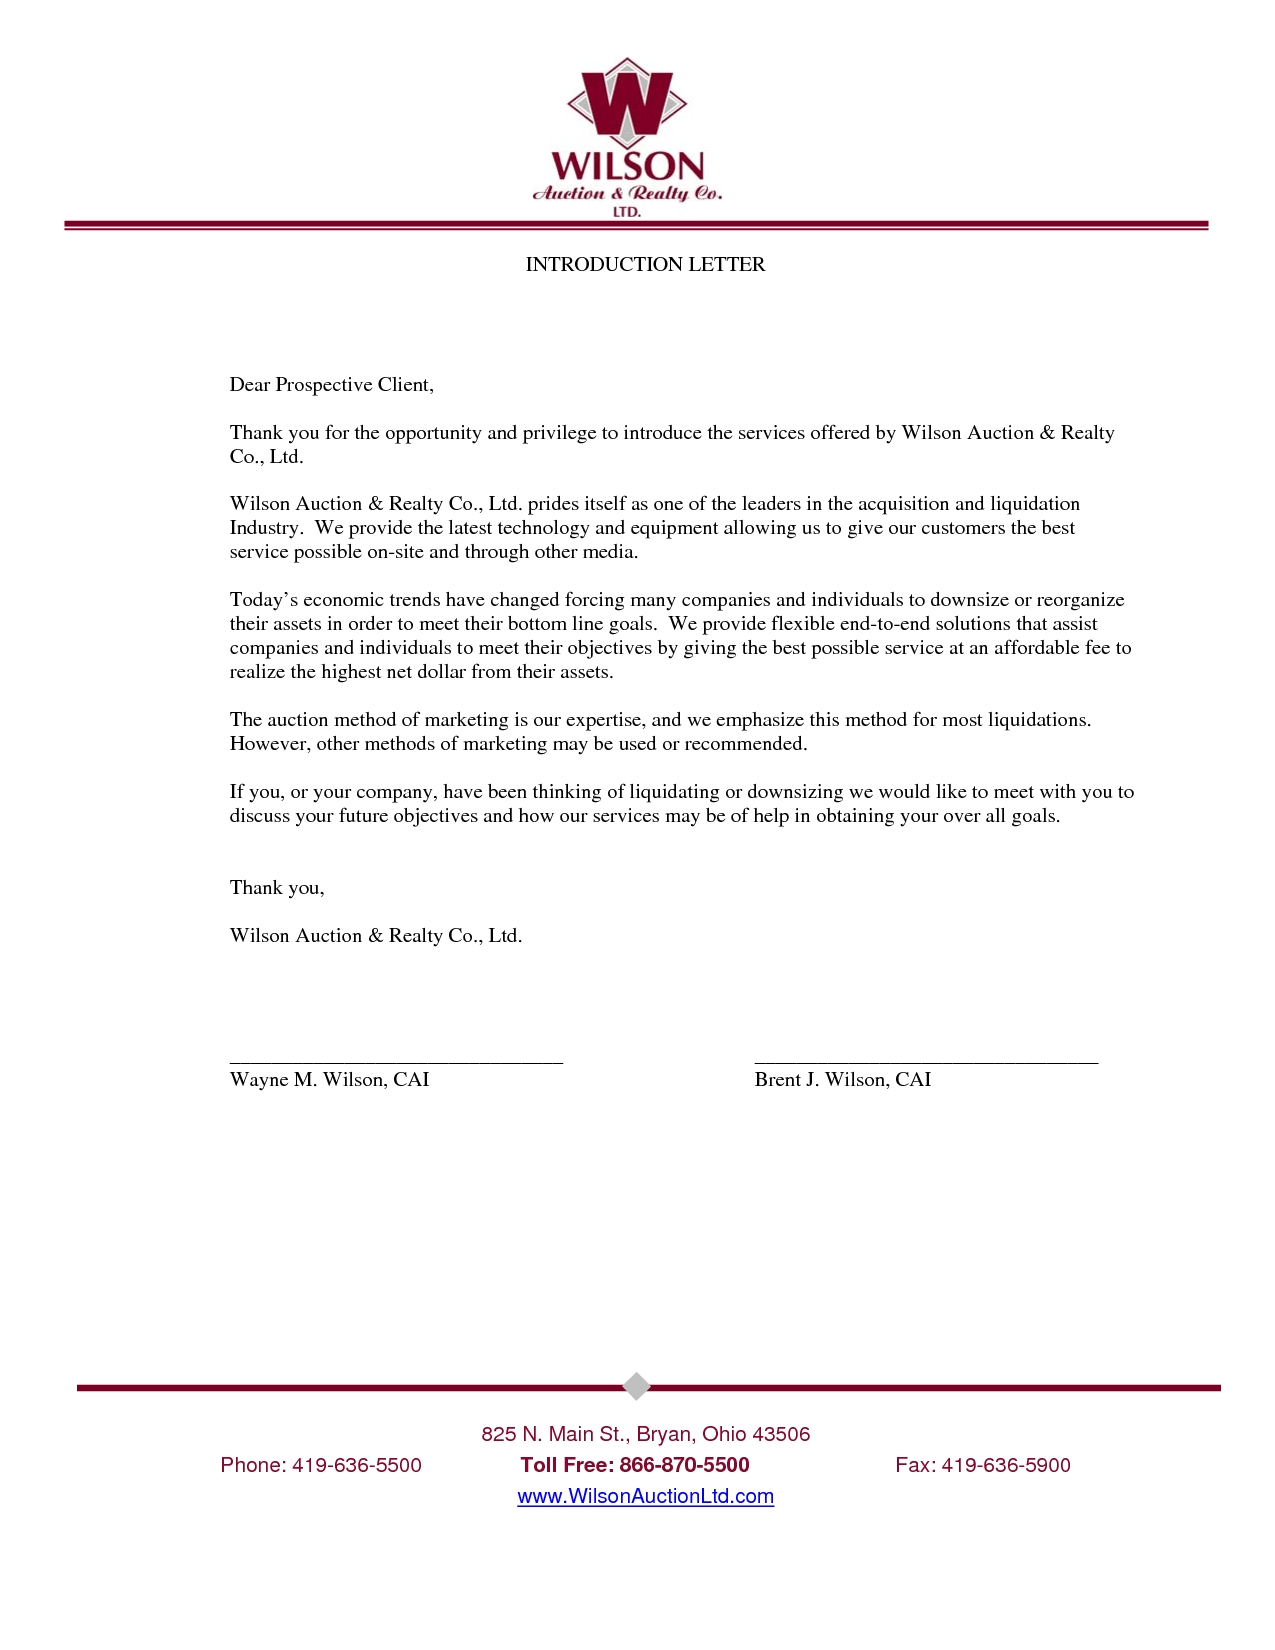 new business introduction letter sample